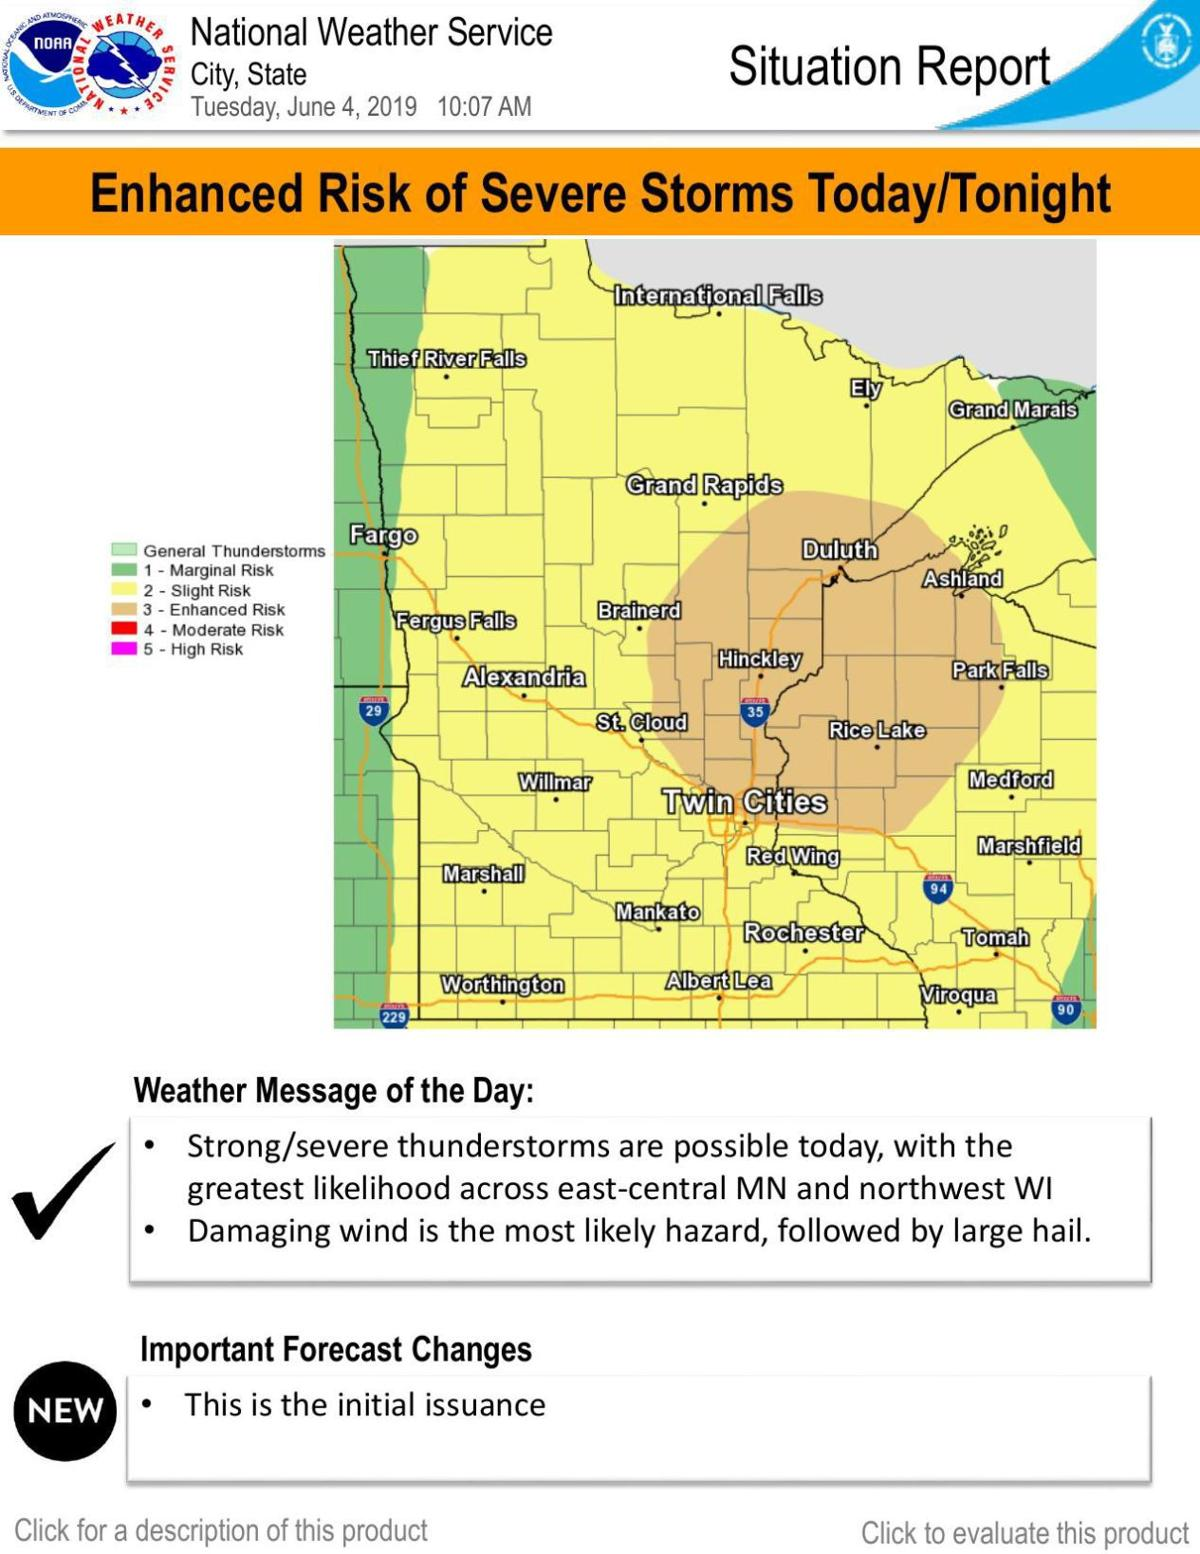 Enhanced Risk of Severe Storms Today/Tonight